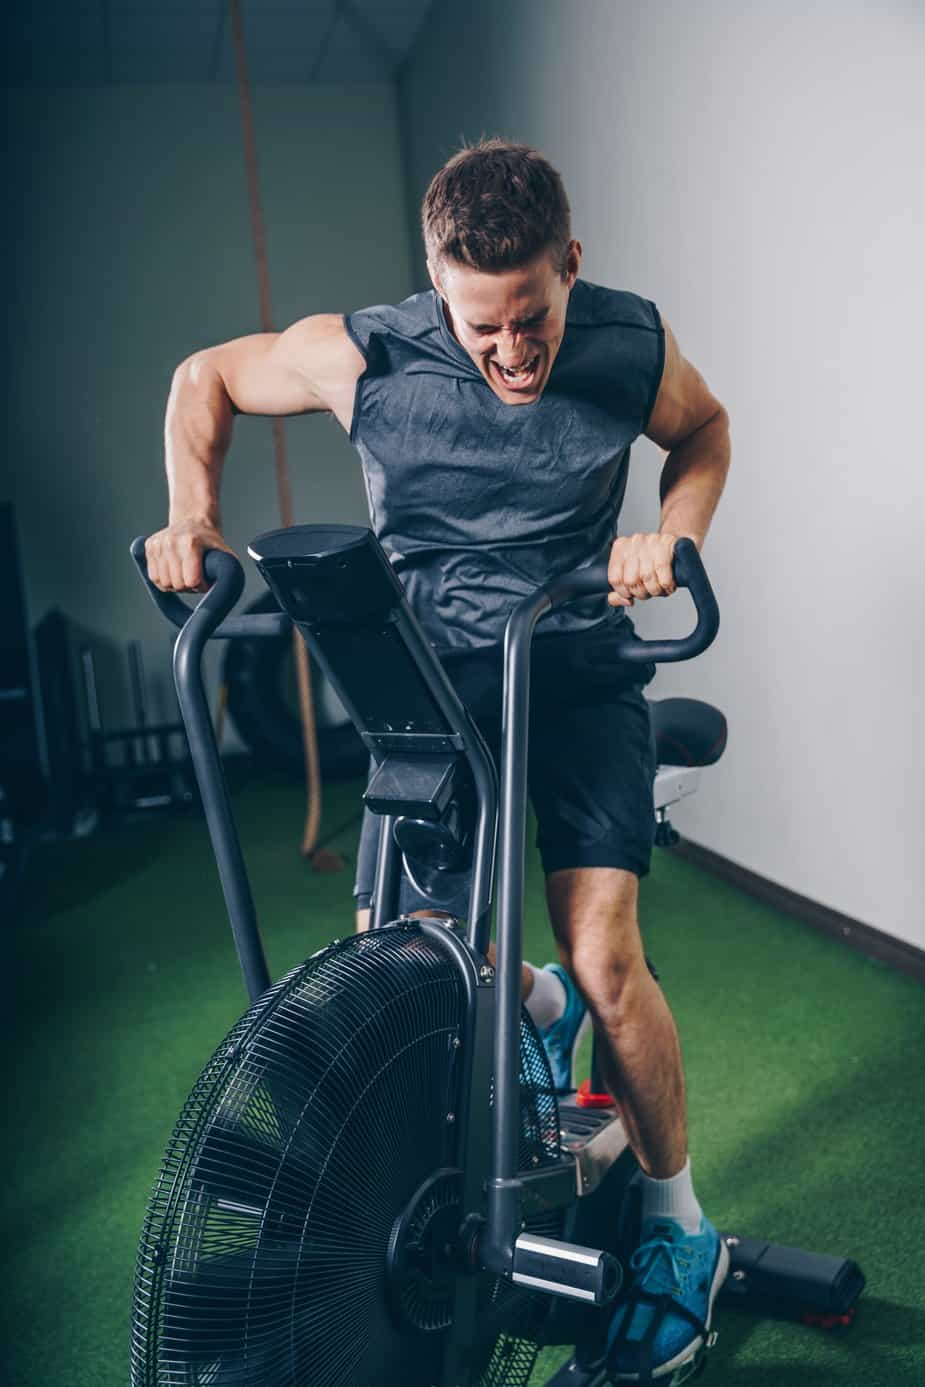 Air Bike exercise is hard, but effective.  All out sprints and intervals are all just part of this fun calorie burning workout.